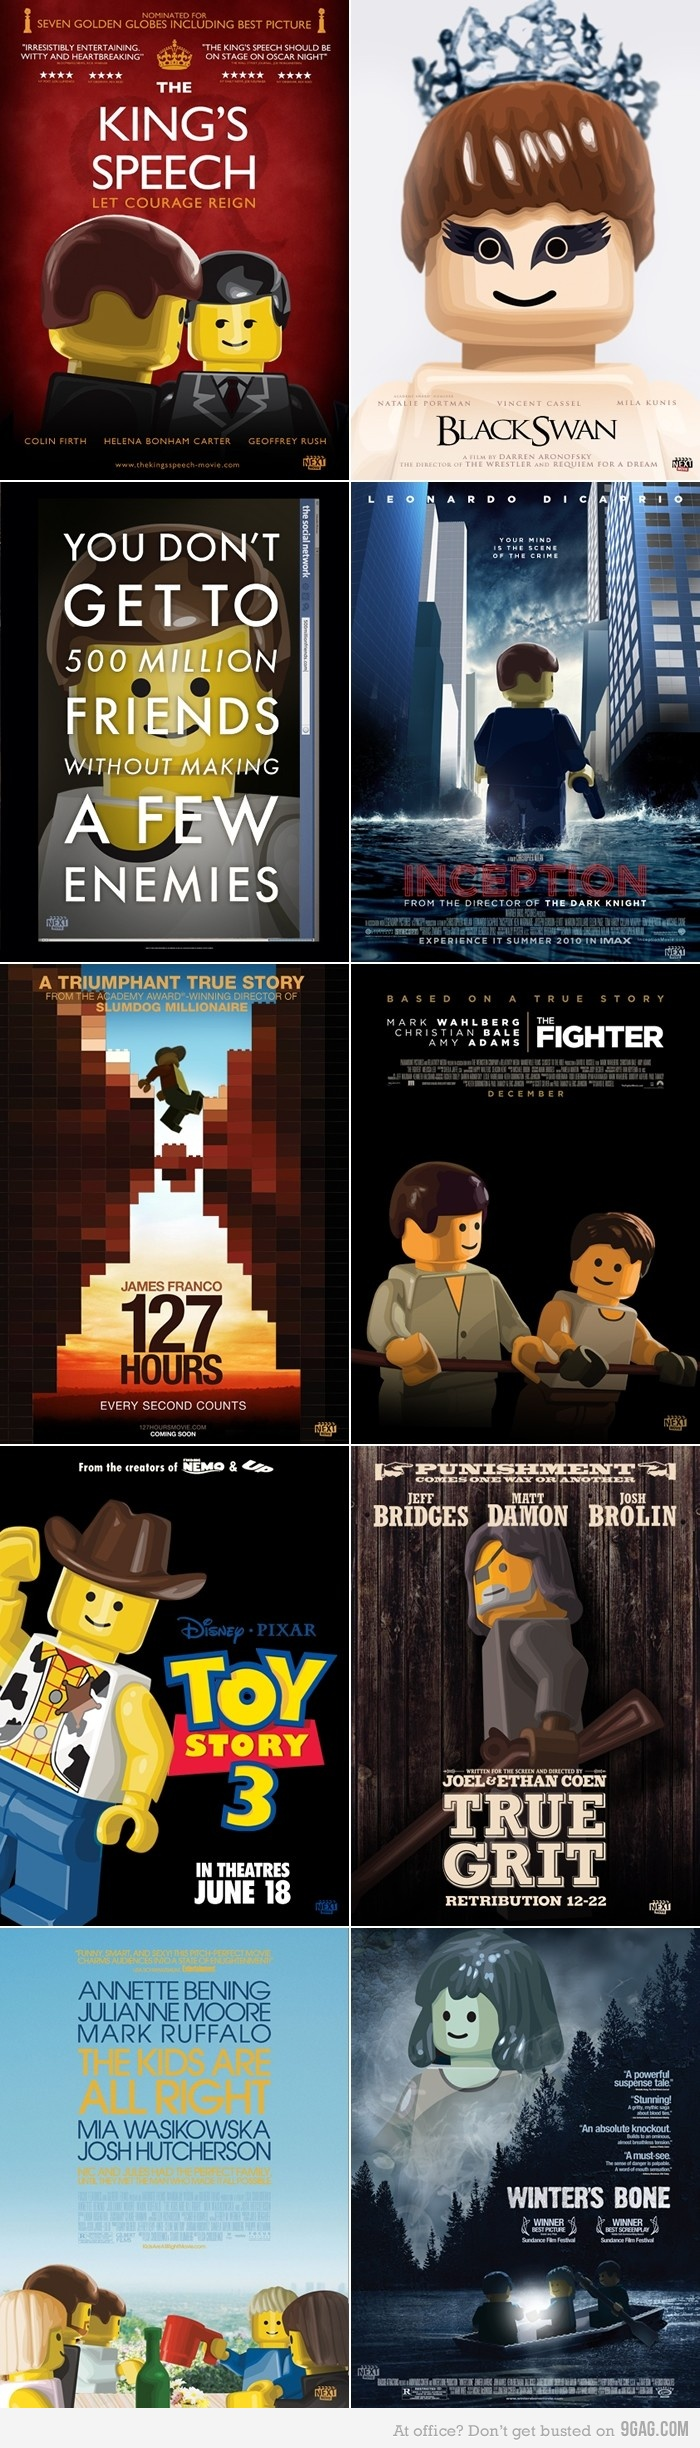 Vans Womens Snow Boots together with Lego Style Movie Posters For The Best Picture Oscar Nominees likewise Paczka Gier 240x320 Na Telefon Chomikuj moreover Best Gifs Oscars 2015 as well 2591178. on lego best picture nominees oscars 2014